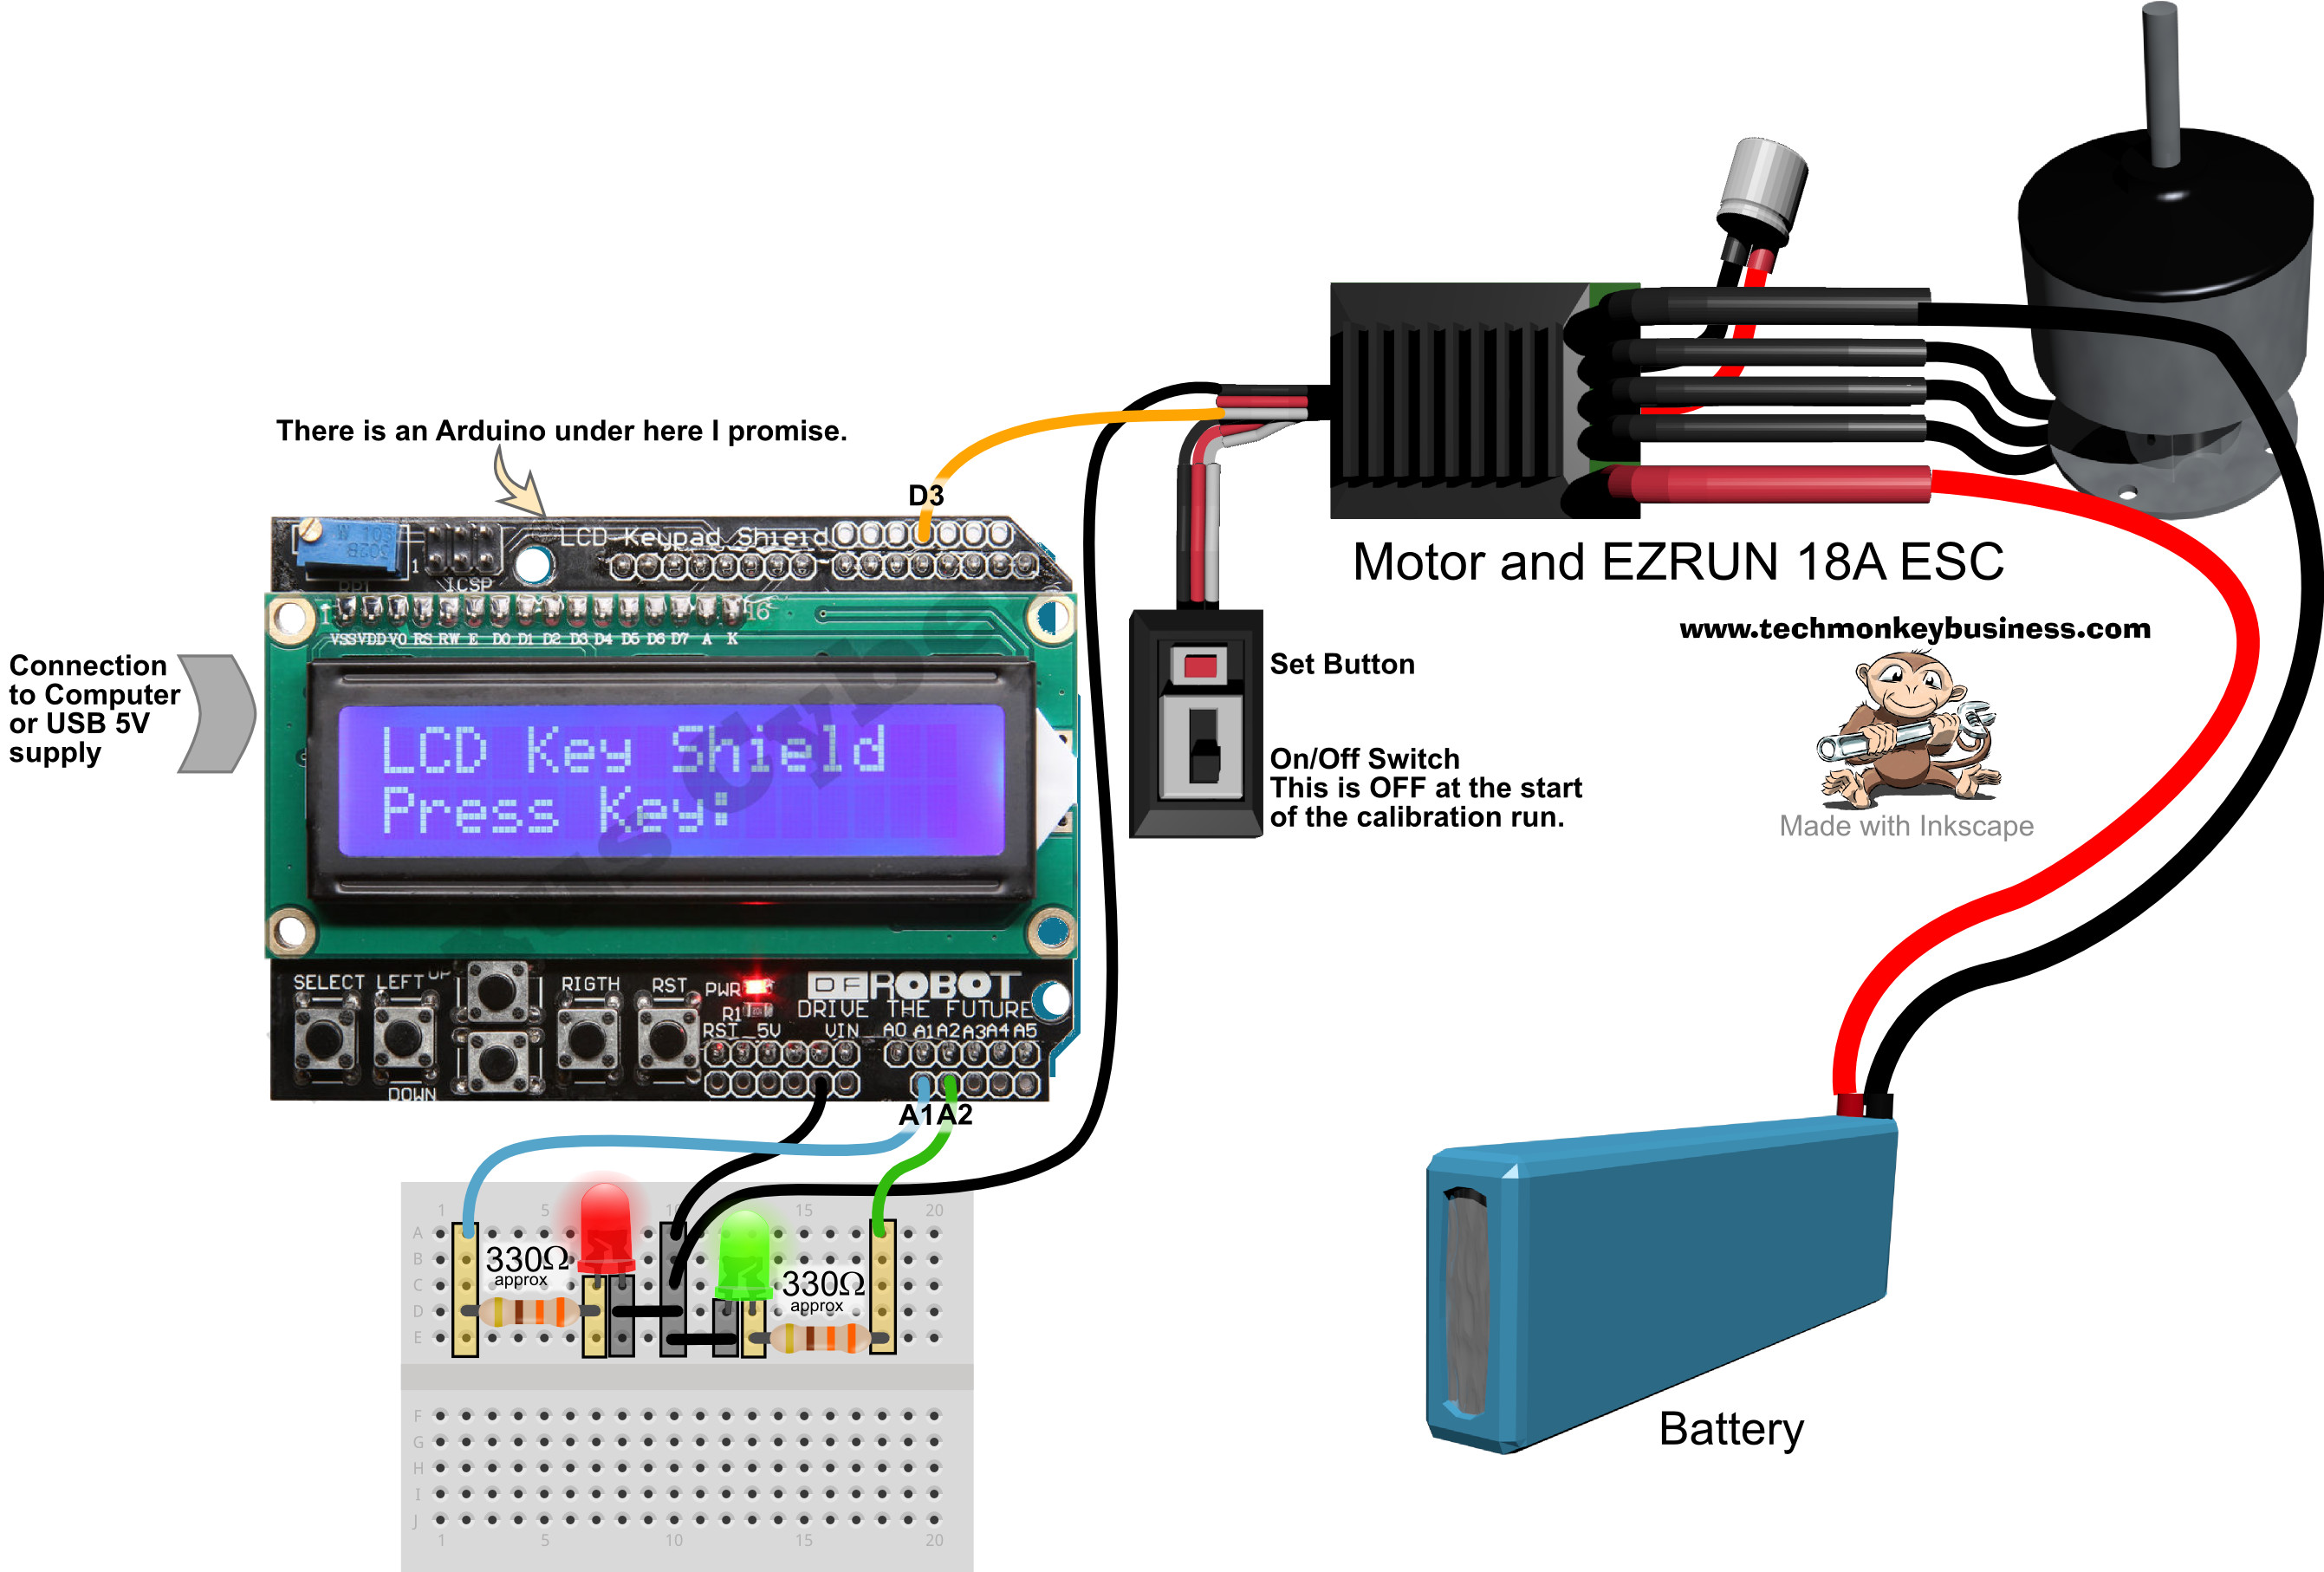 arduino lcd screen wiring diagram sequence for web application circuit great installation of programming and calibrating the ezrun 18a escs laptop